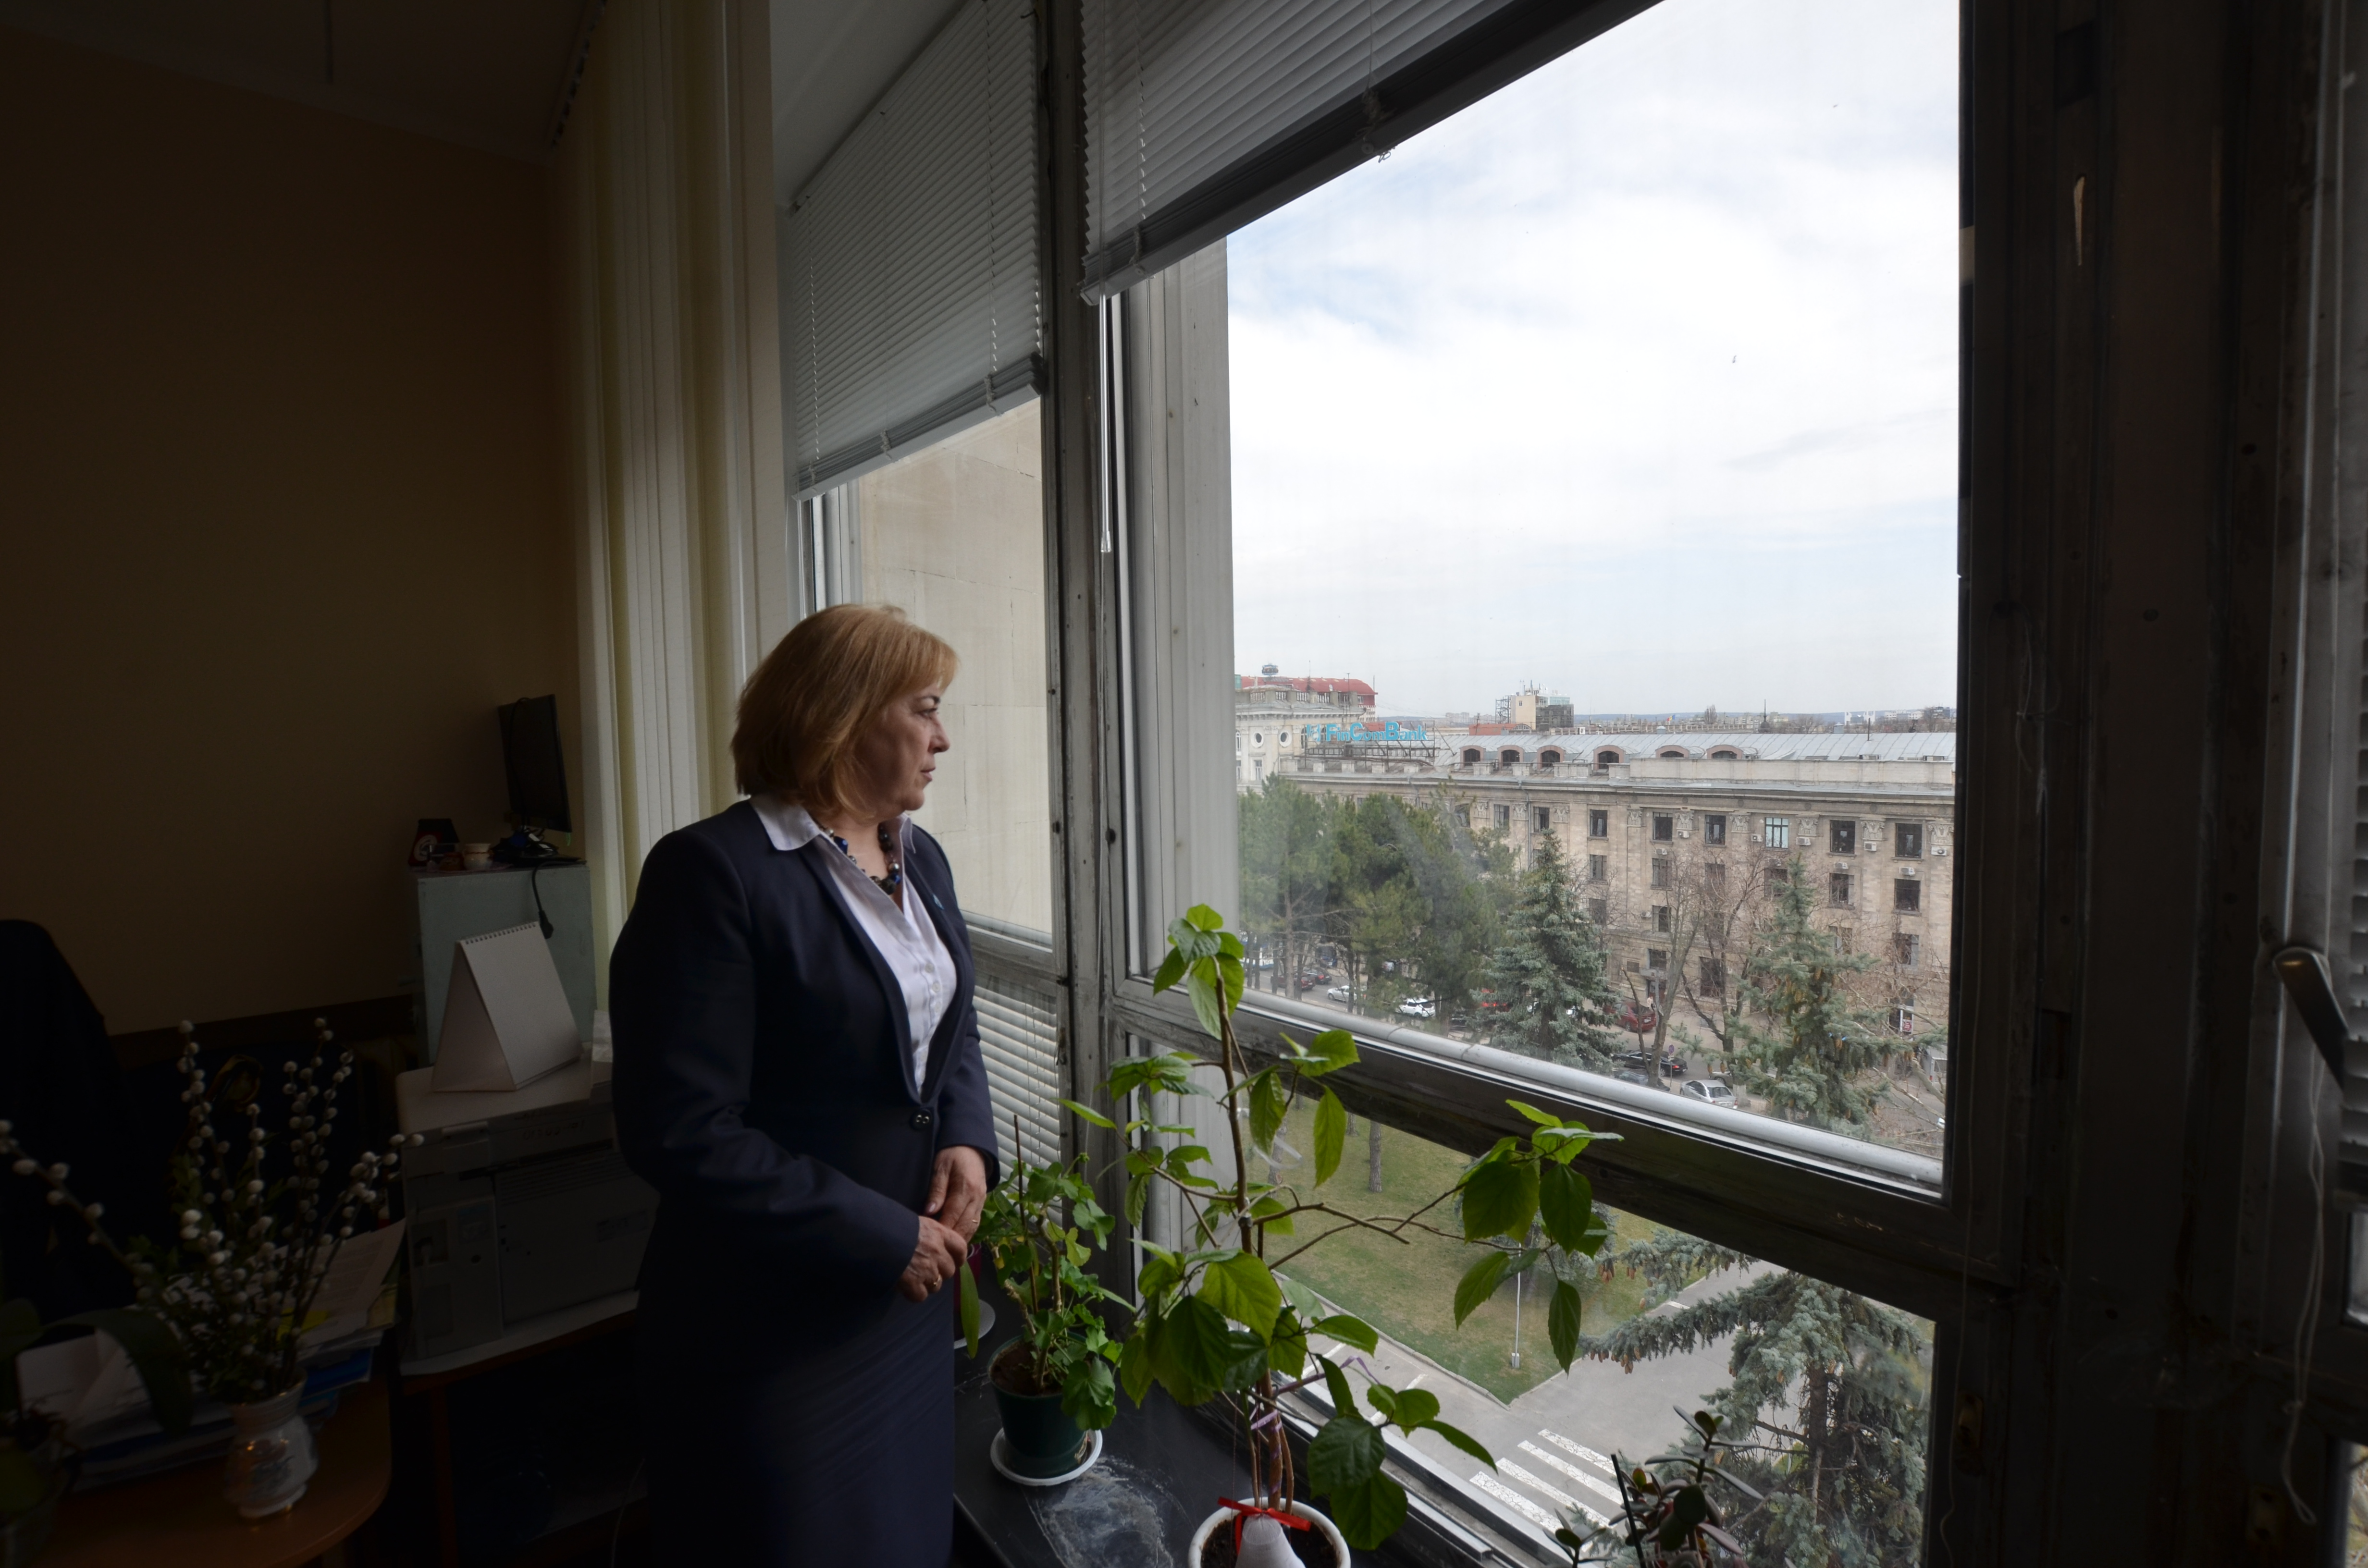 Ecaterina Berejan, the secretary of Moldova's national anti-trafficking committee poses for pictures in her office in Chisinau, Moldova, April 5, 2018.